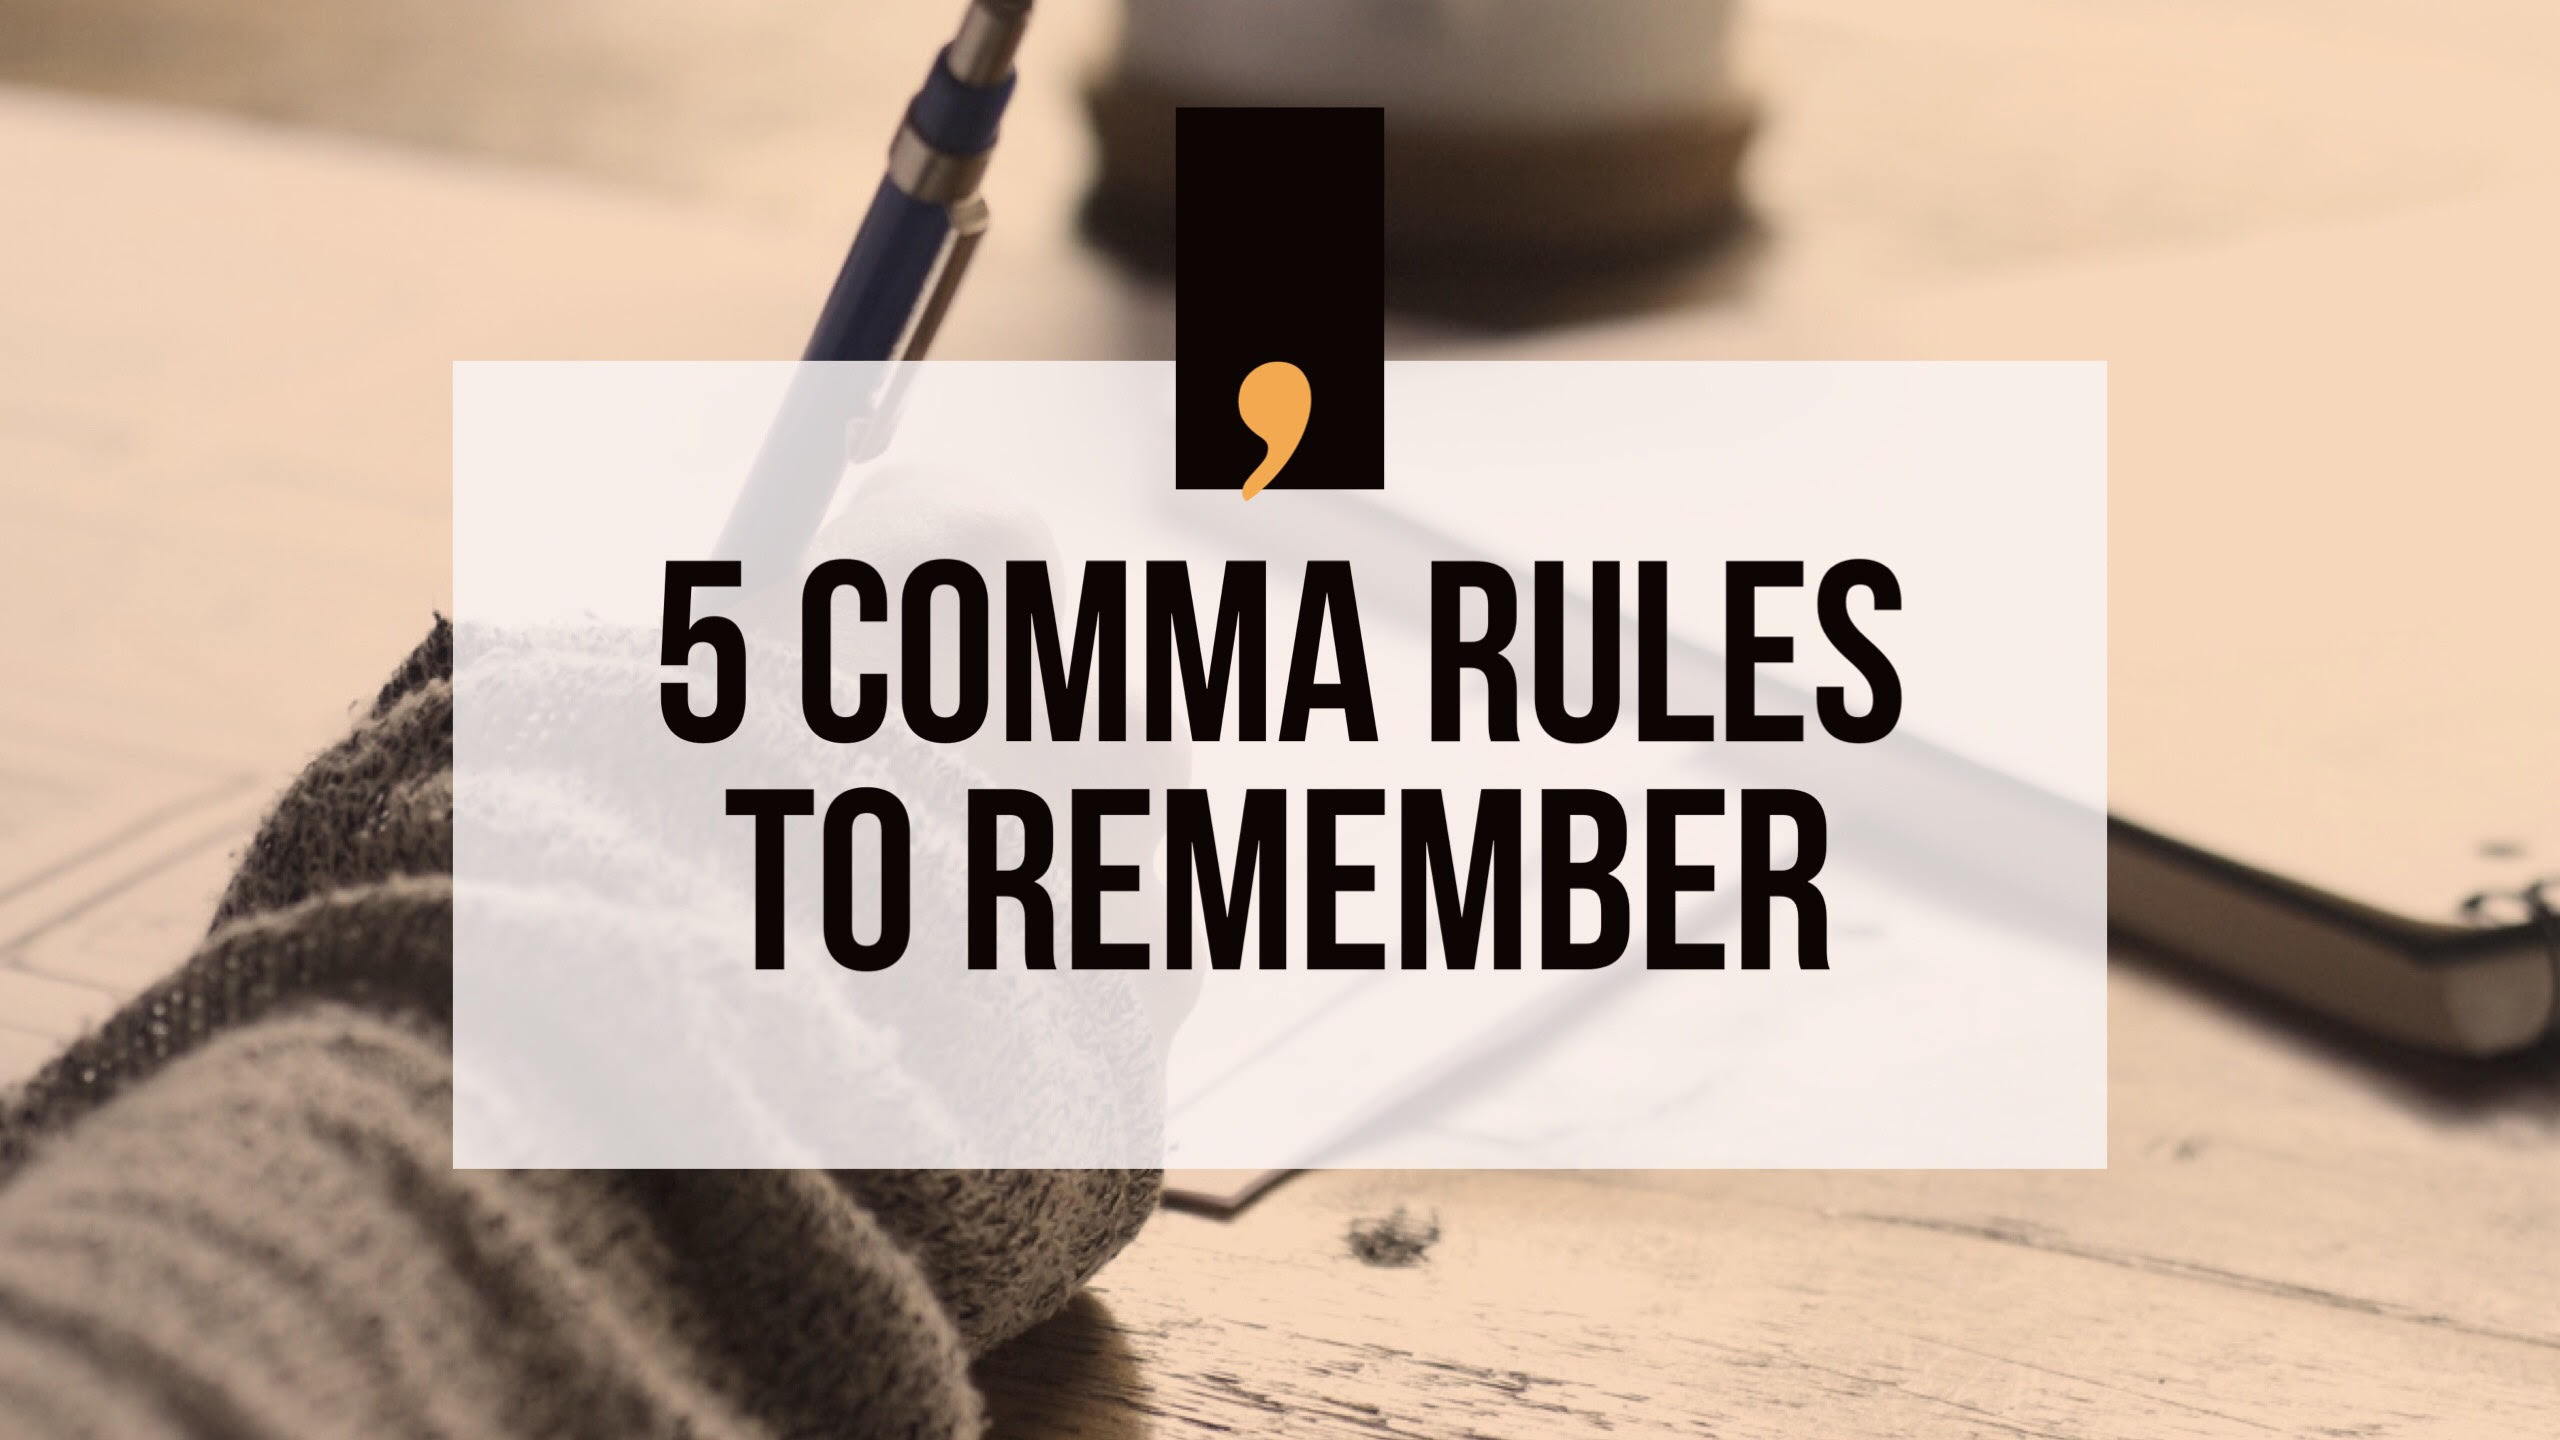 The 5 Comma Rules To Remember